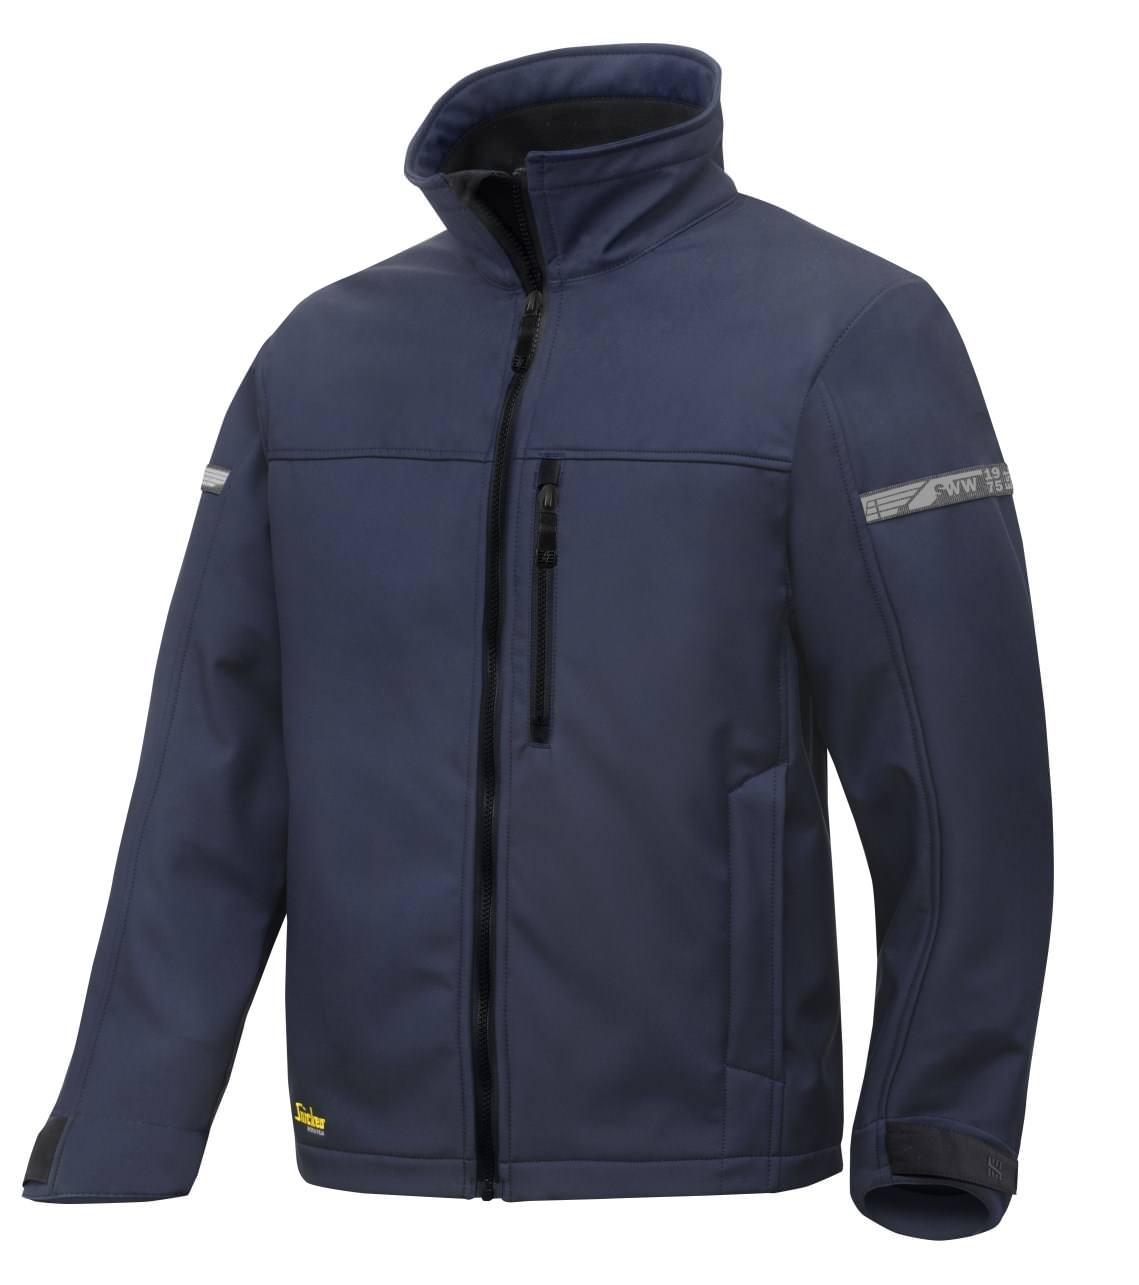 Snickers 1200 AllroundWork, Softshell Jacket